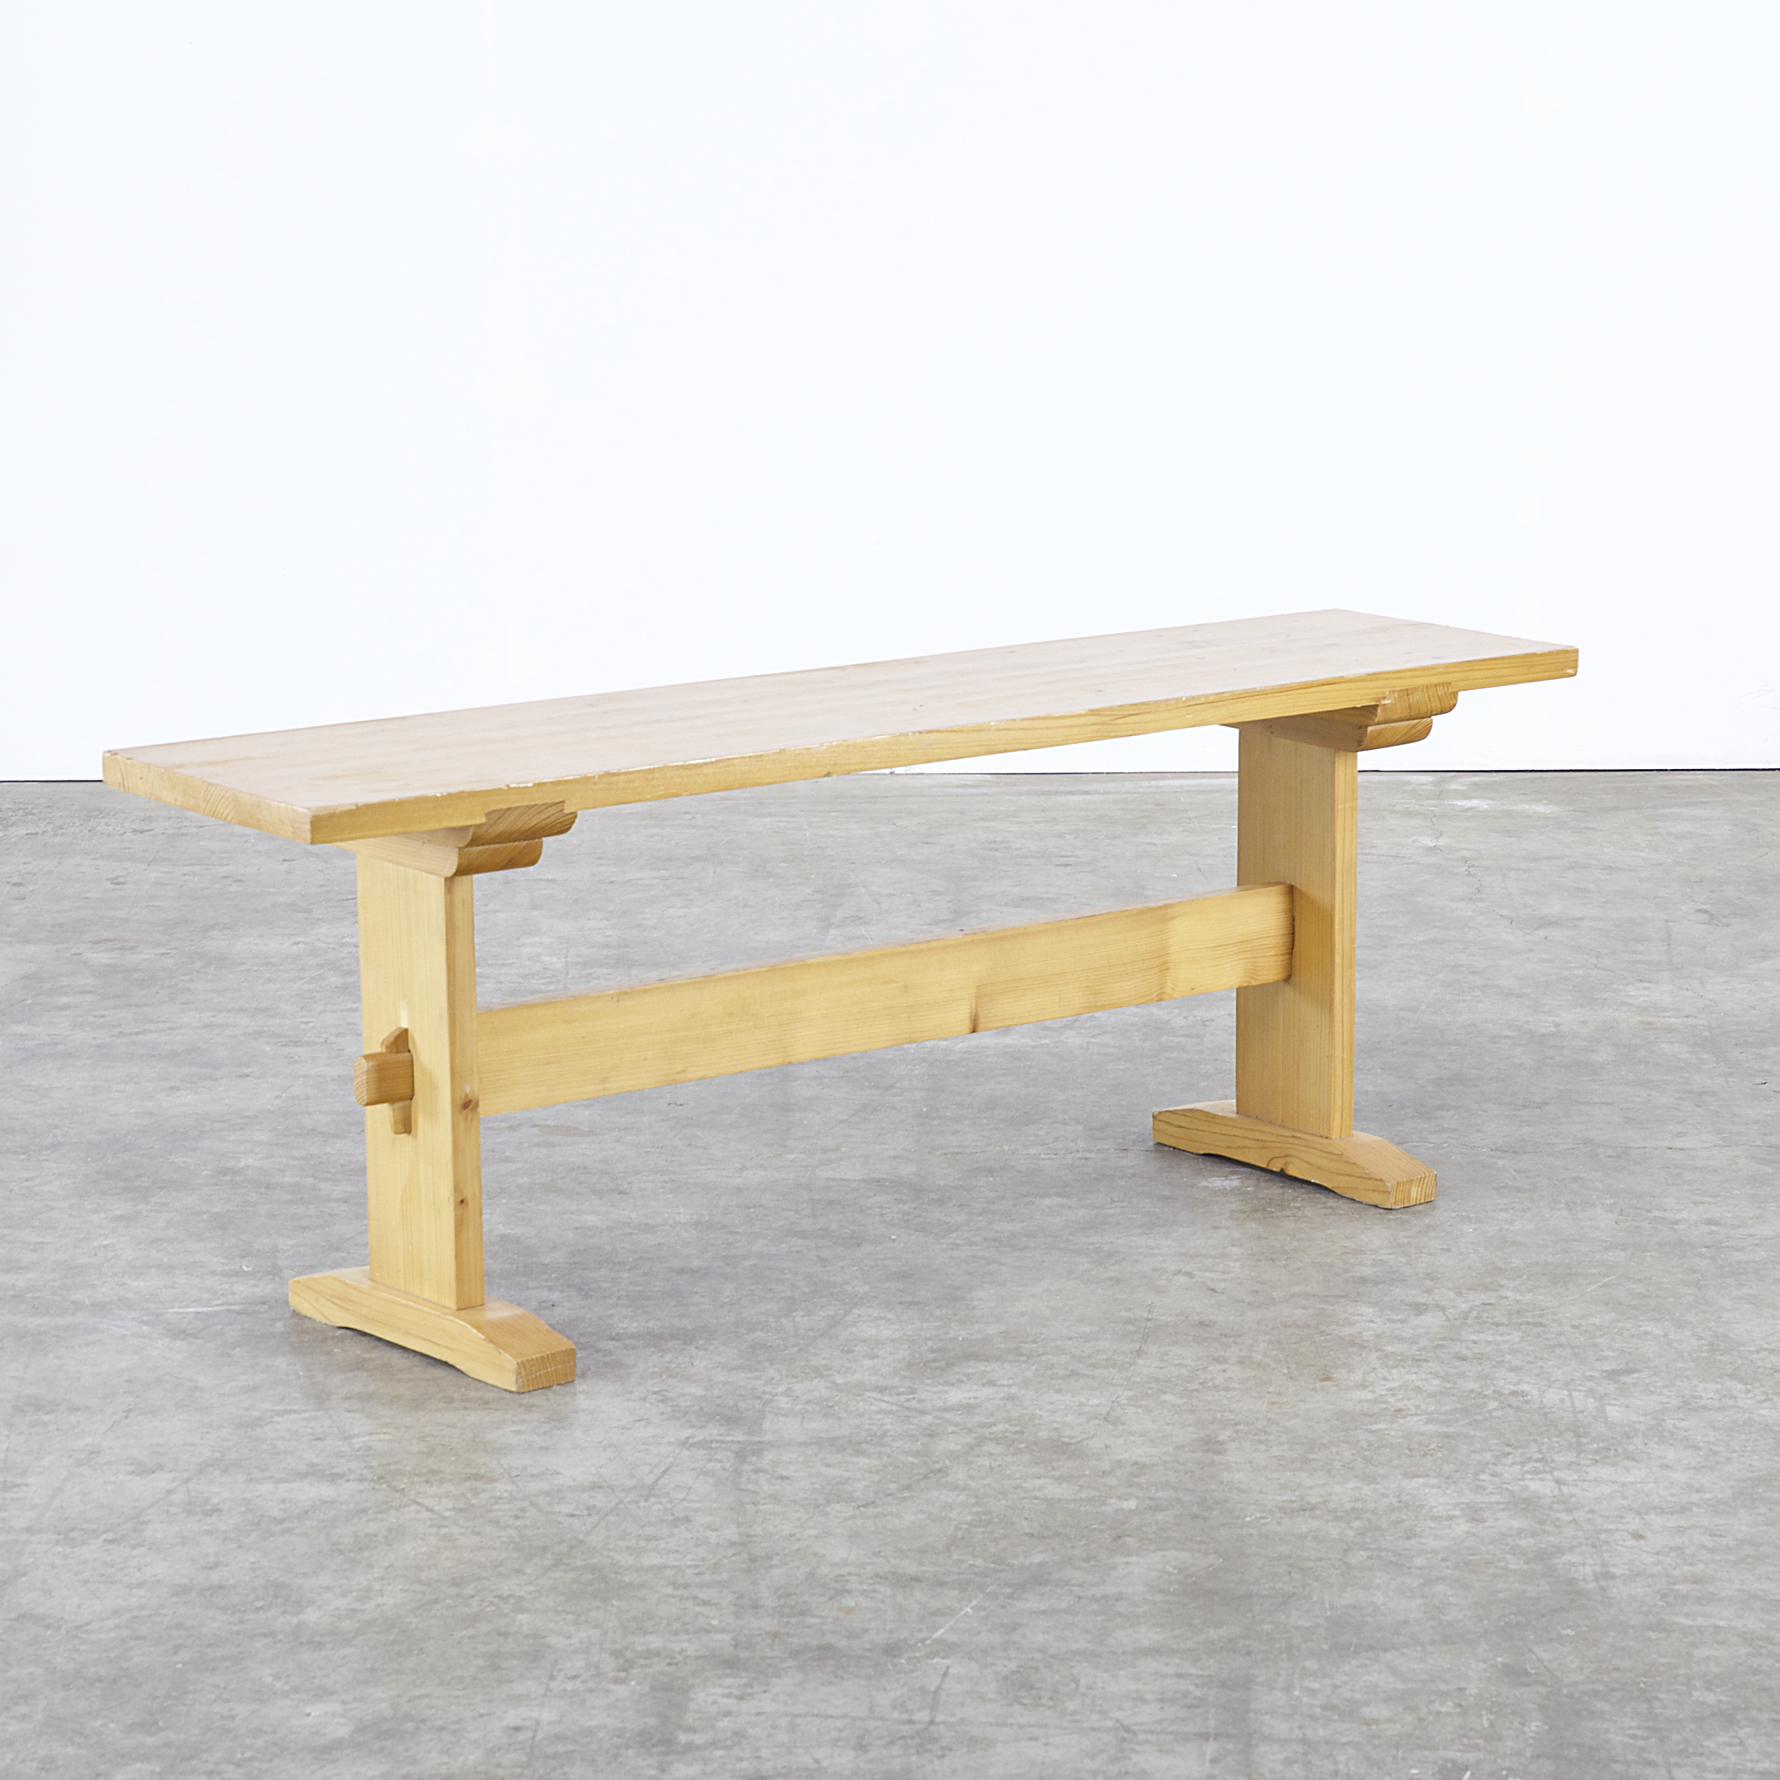 art industrial furniture asian bench exports retro collections